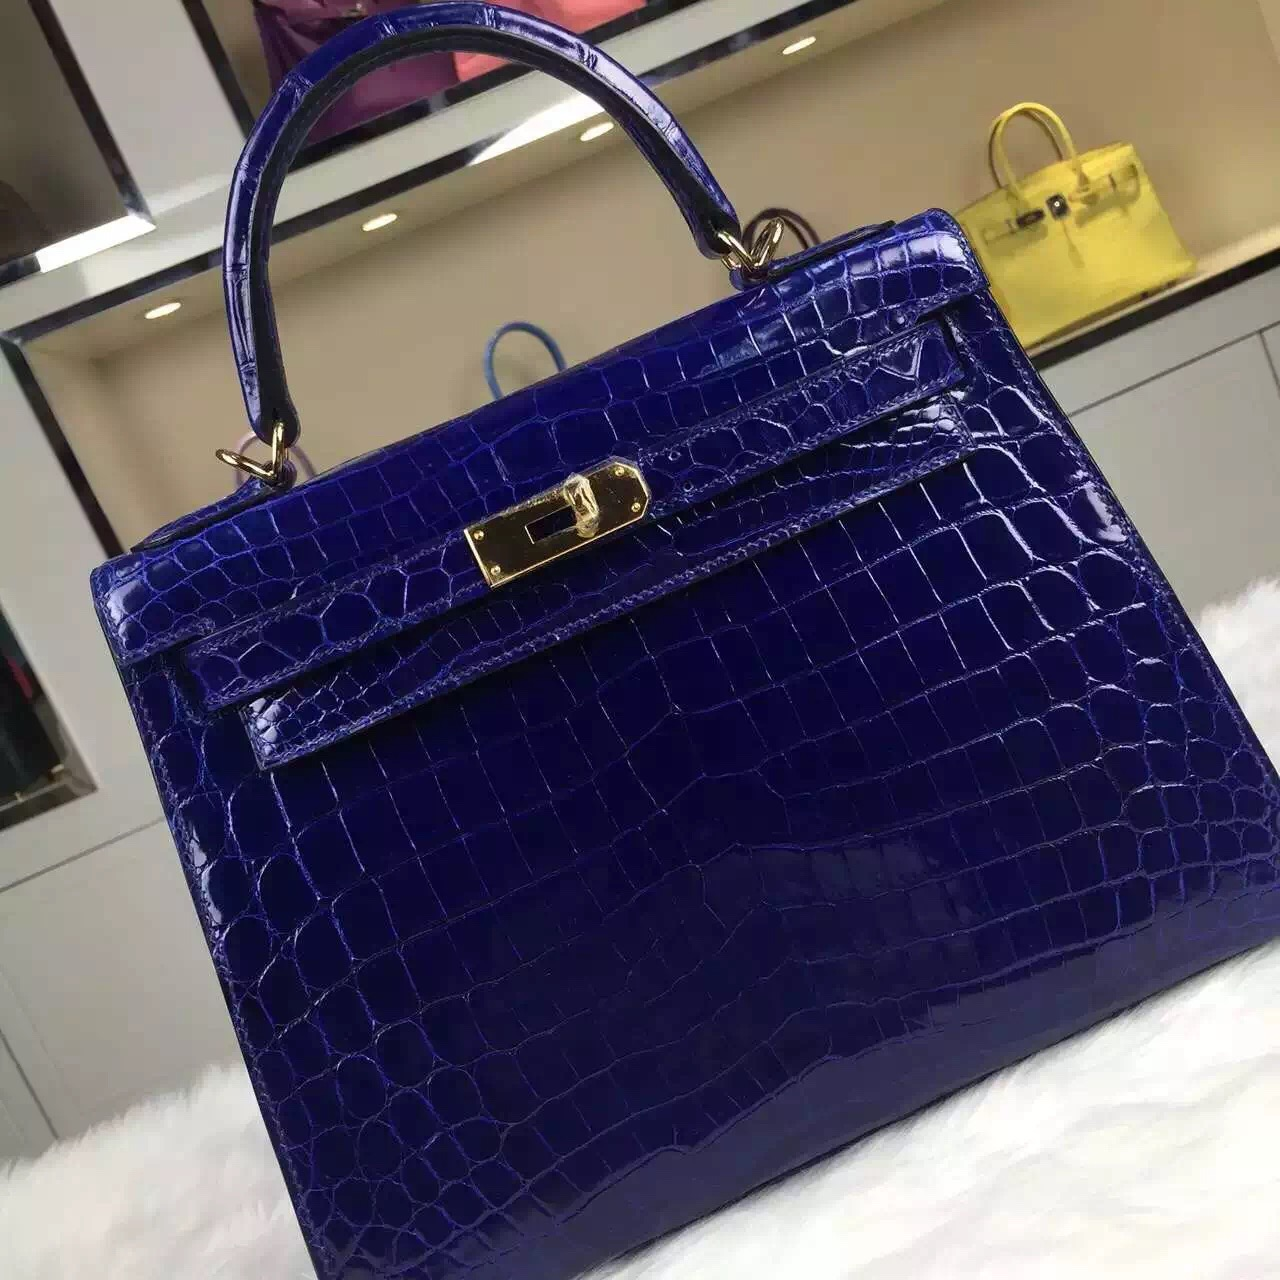 Discount Hermes Kelly32CM Crocodile Shiny Leather 7T Blue Electric Fashion Tote Bag